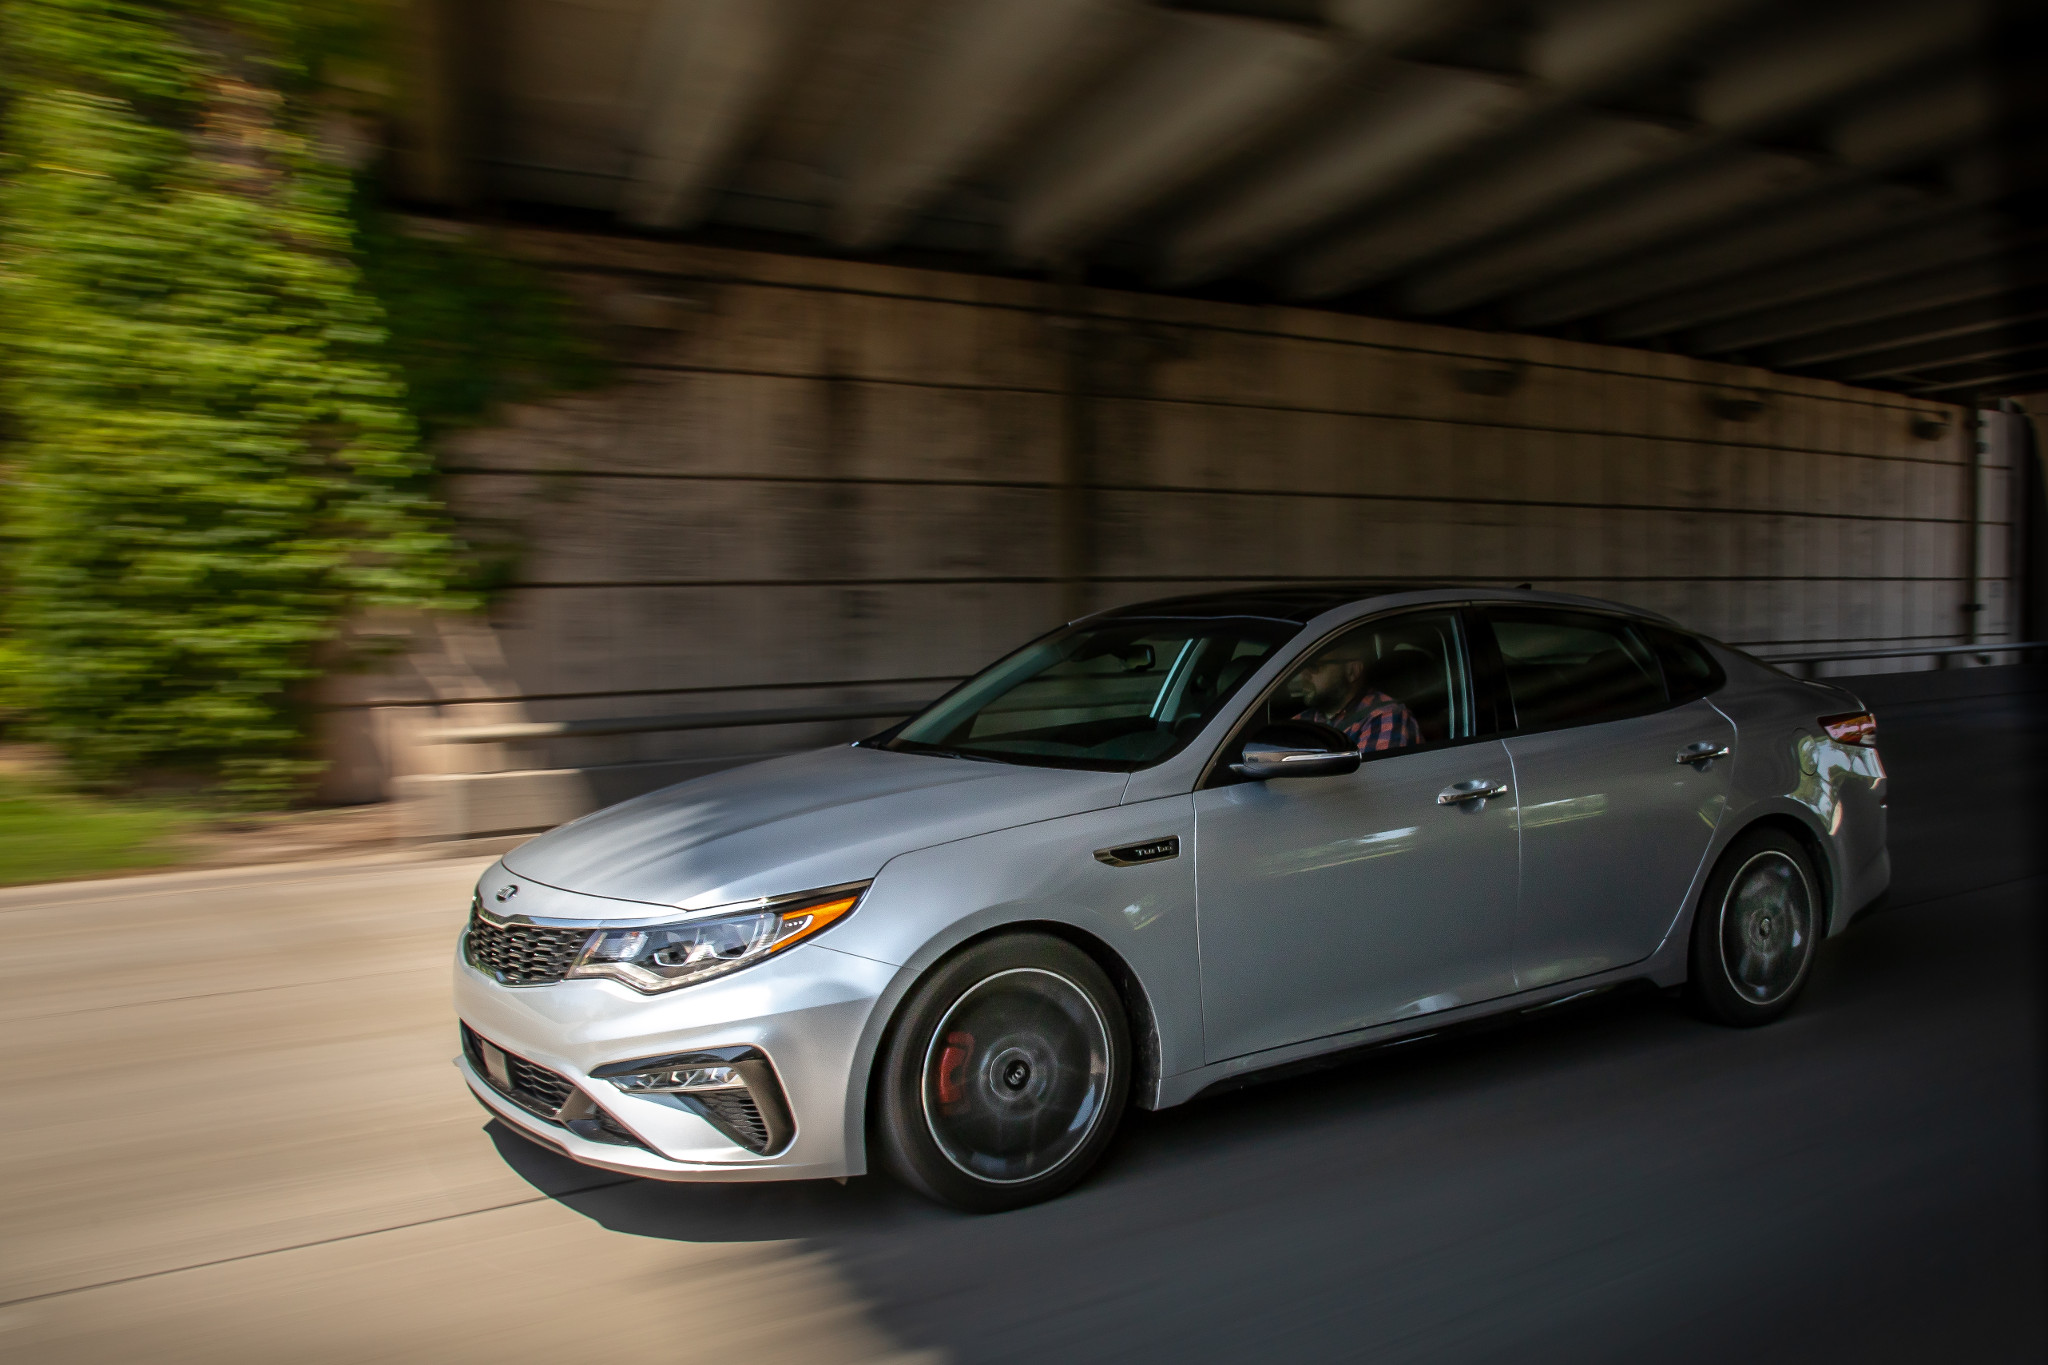 2019 Kia Optima: A Value Player, Not an Athlete